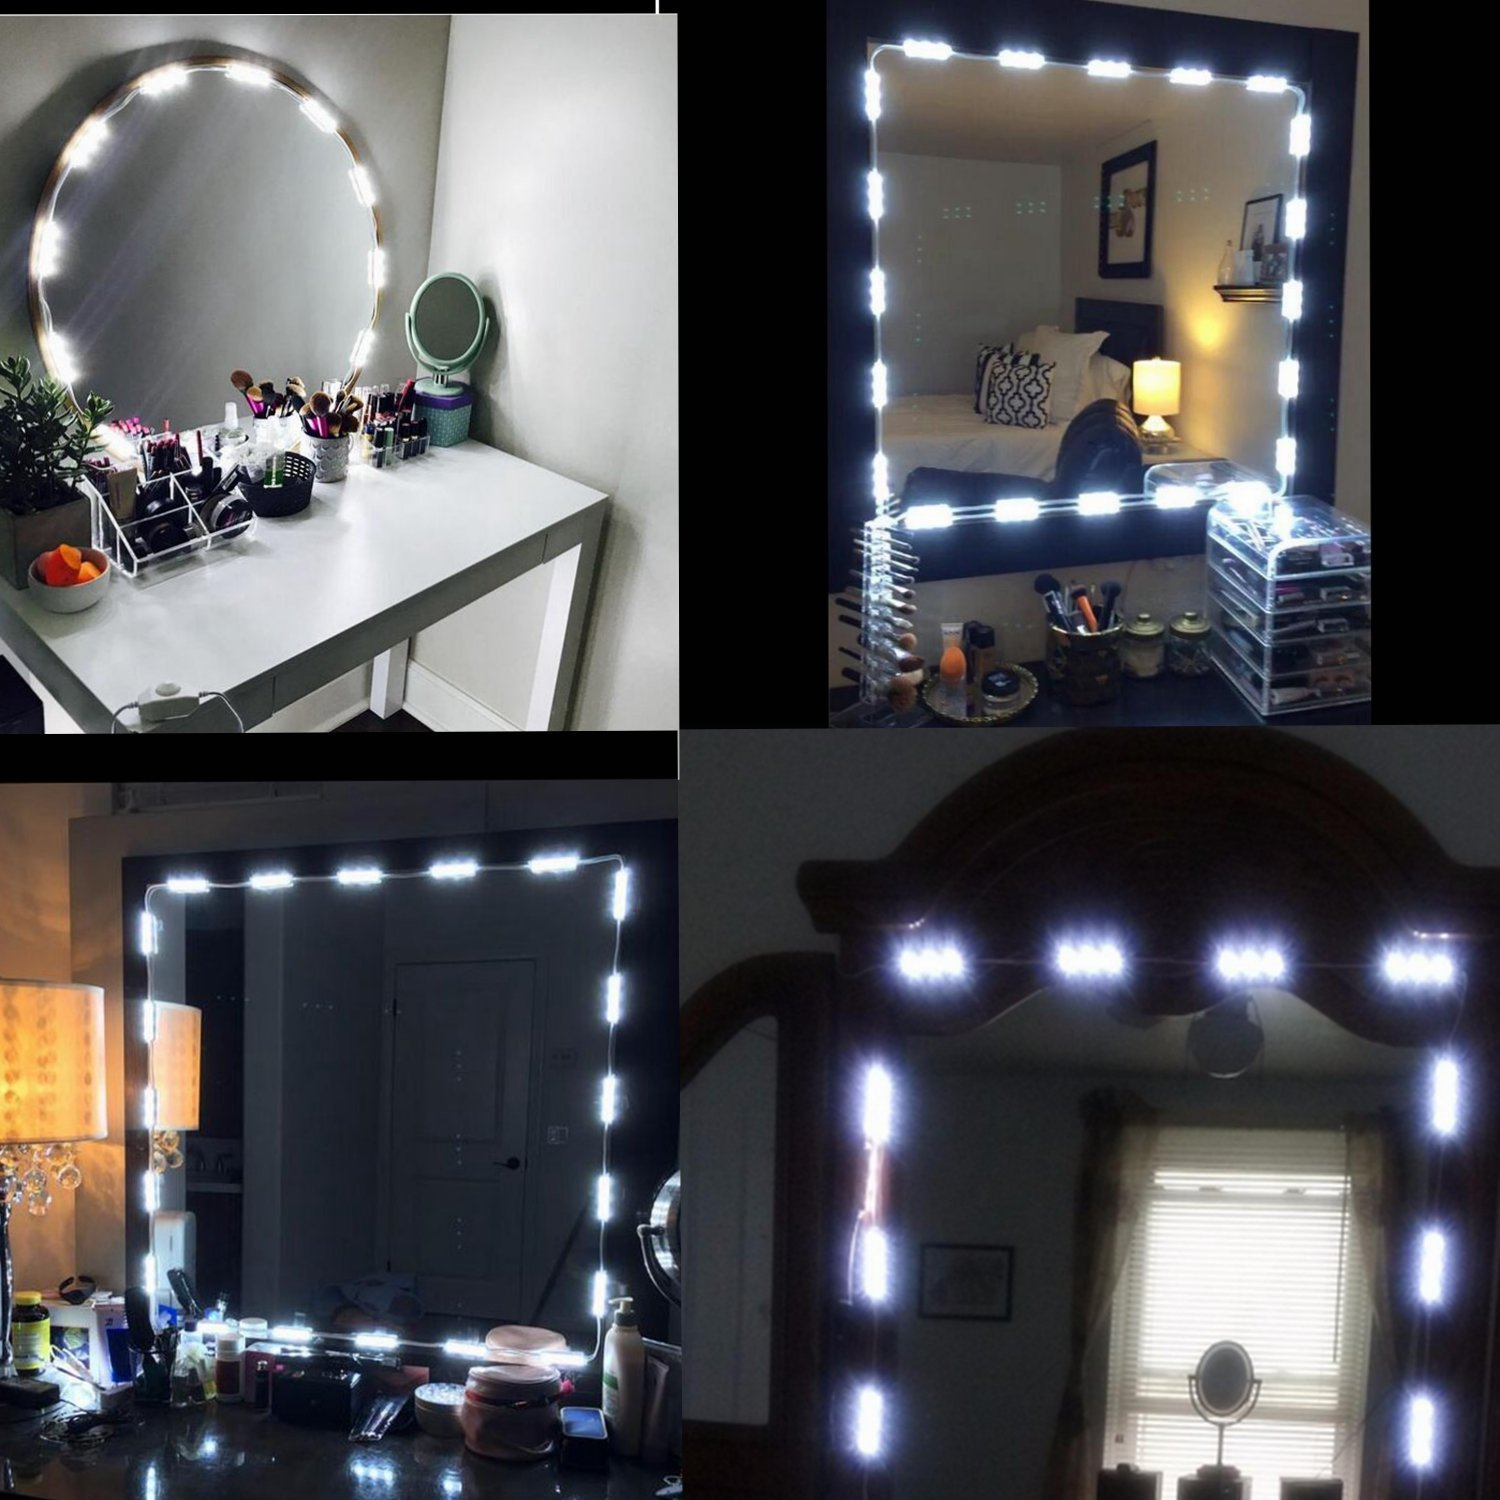 COSOON Vanity Mirror LED Light, DIY Cosmetic Makeup Mirror Lamp, 10ft 60 LED Light Kit, for Cosmetic Mirror, Natural White Vanity Lights +Remoter+UL Power Supply (Mirror NOT Included) T016